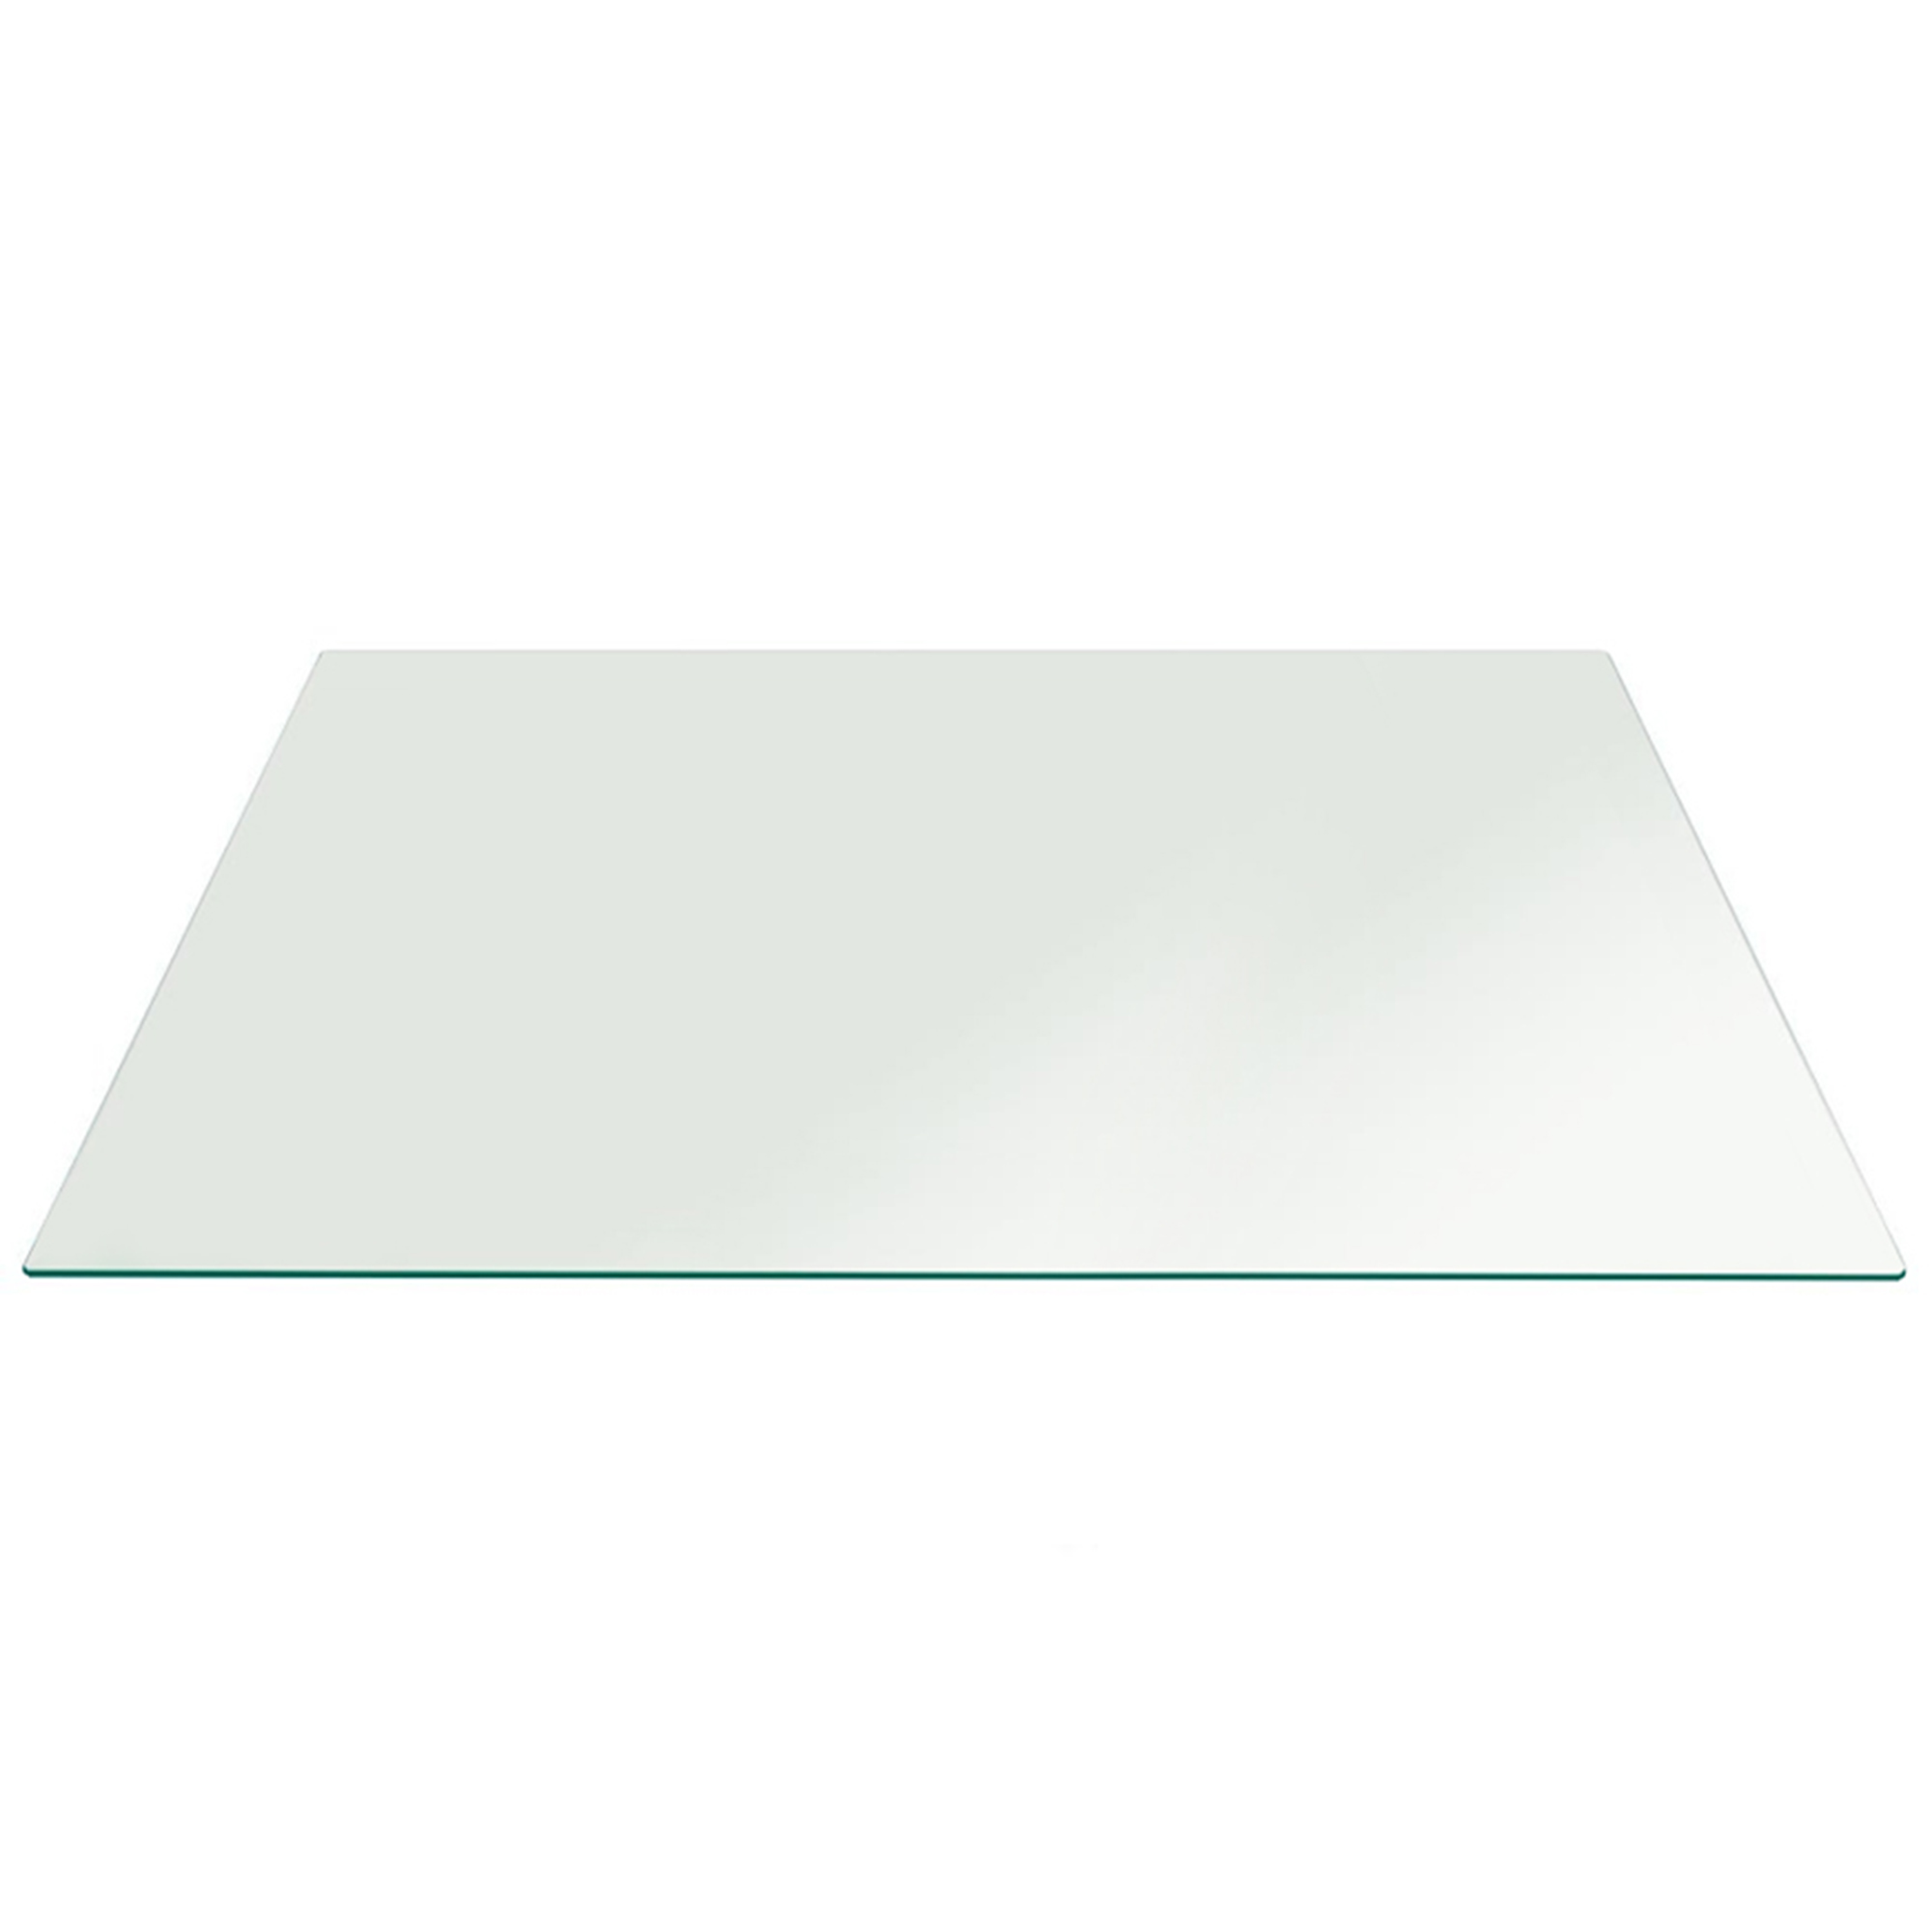 fab glass and mirror rectangle clear tempered glass table top w rh ebay com tempered glass table top protector tempered glass table top rectangle